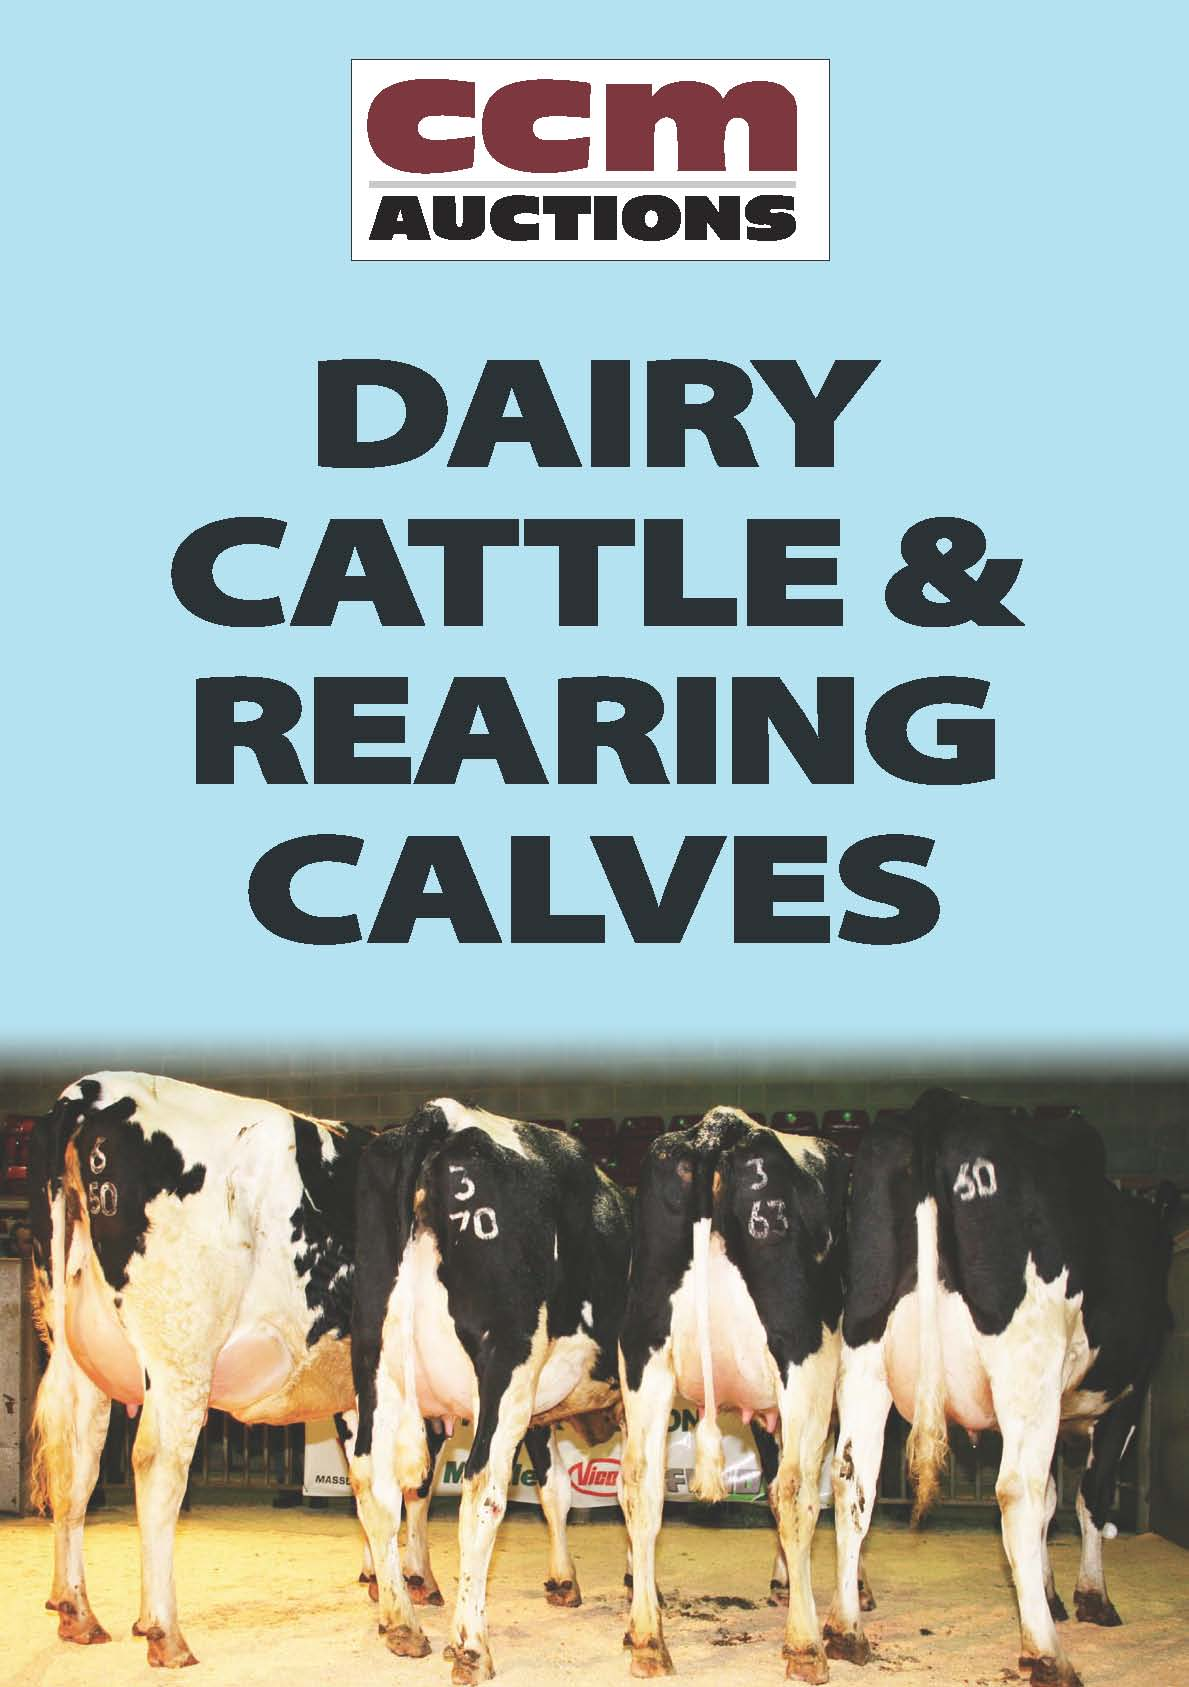 DAIRY & CALVES - MONDAY 25TH JULY 2016